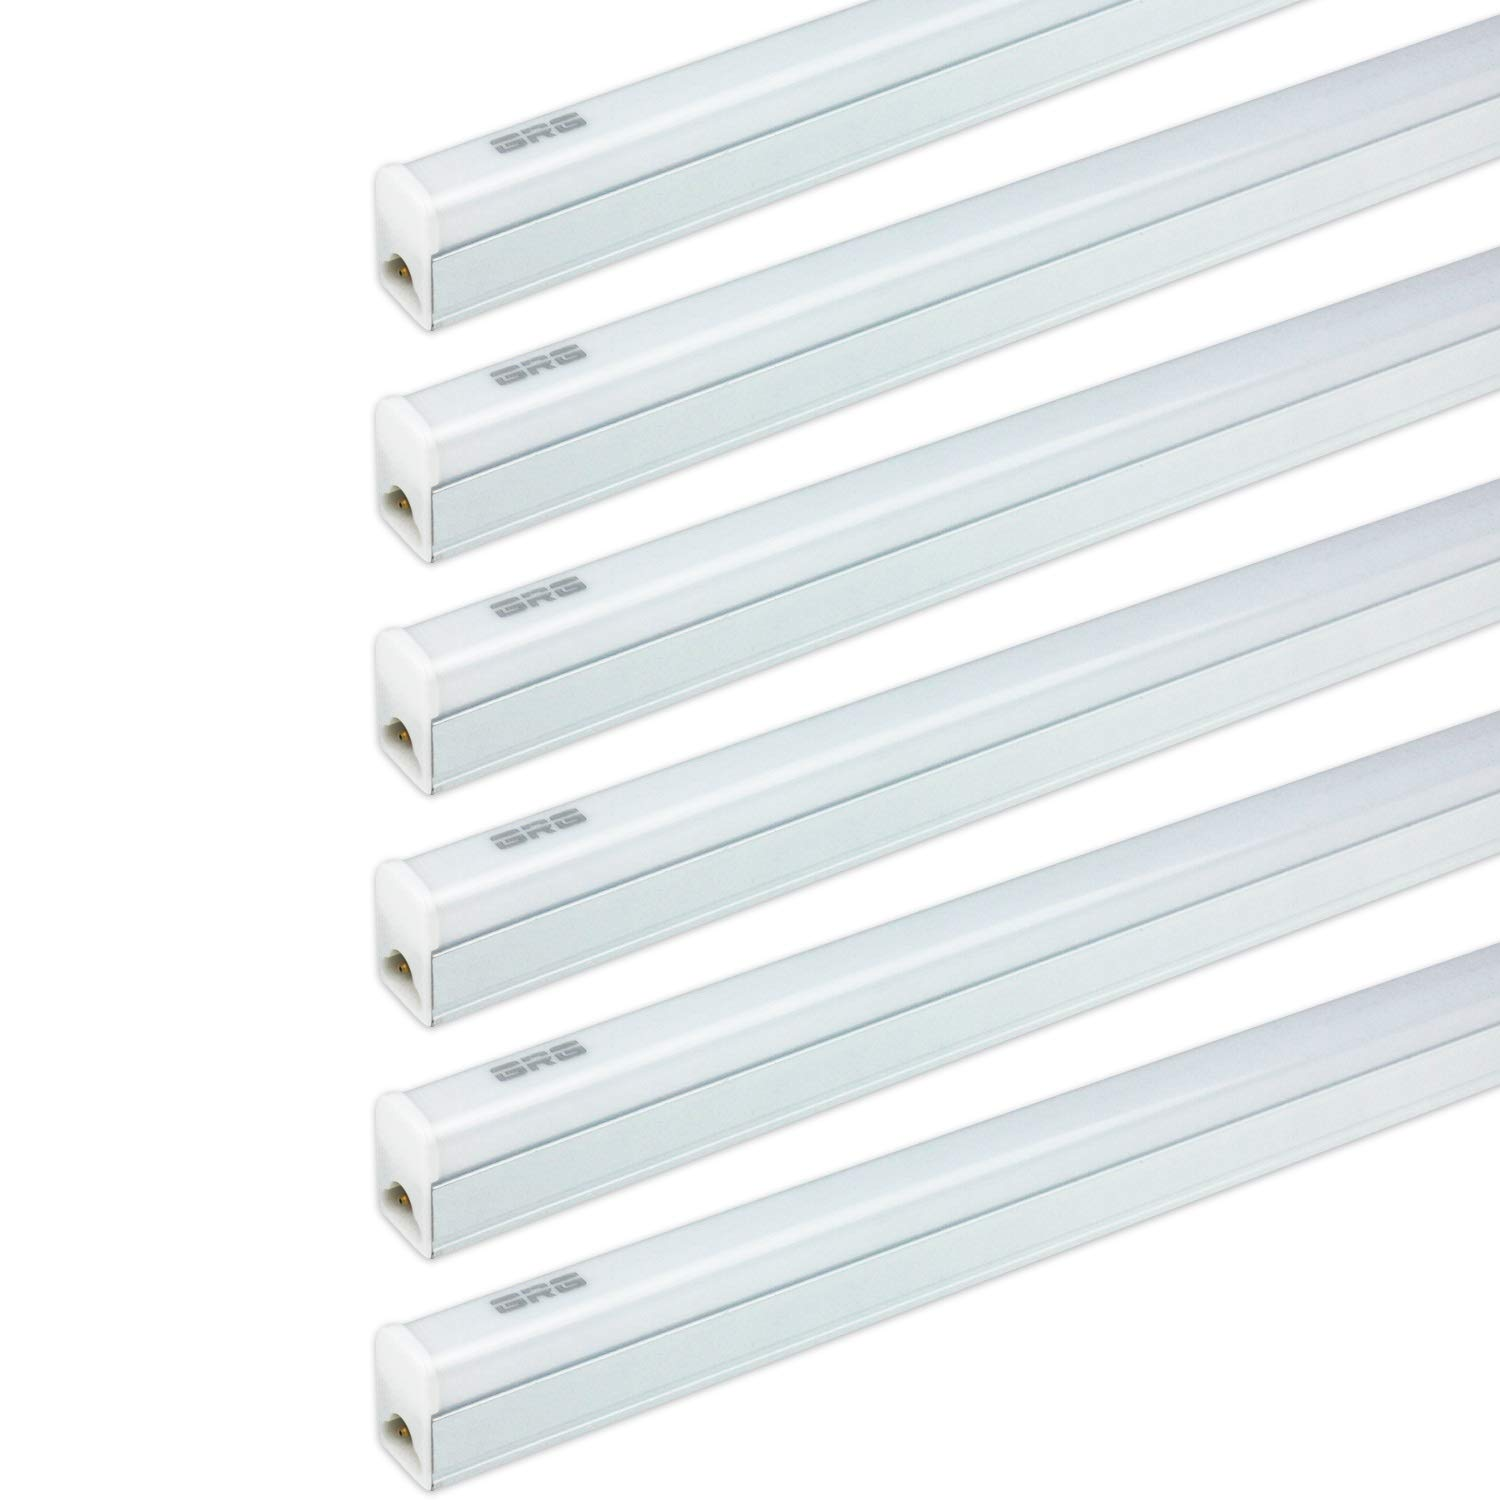 (Pack of 6) GRG LED T5 Integrated Single Fixture, 2Ft 10W 1100lm 6500K, Linkable Utility Shop Light, Garage Light, LED Ceiling & Under Cabinet Light, T5 T8 Fluorescent Tube Light Fixture Replacement